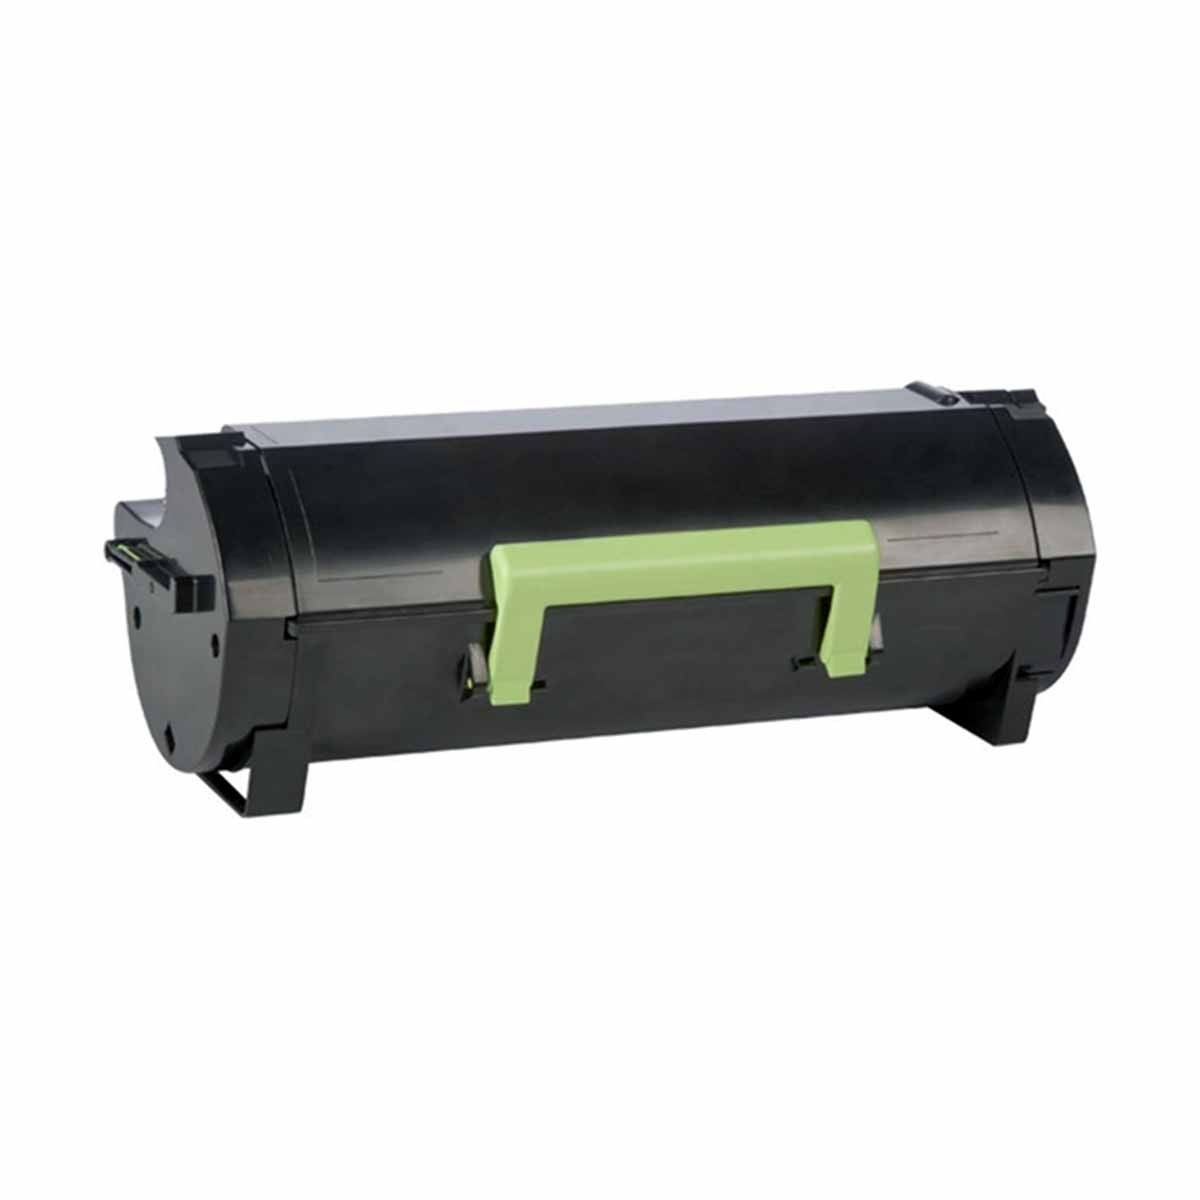 CARTUCHO LEXMARK MX310/410/511/611 (COMPATIVEL)